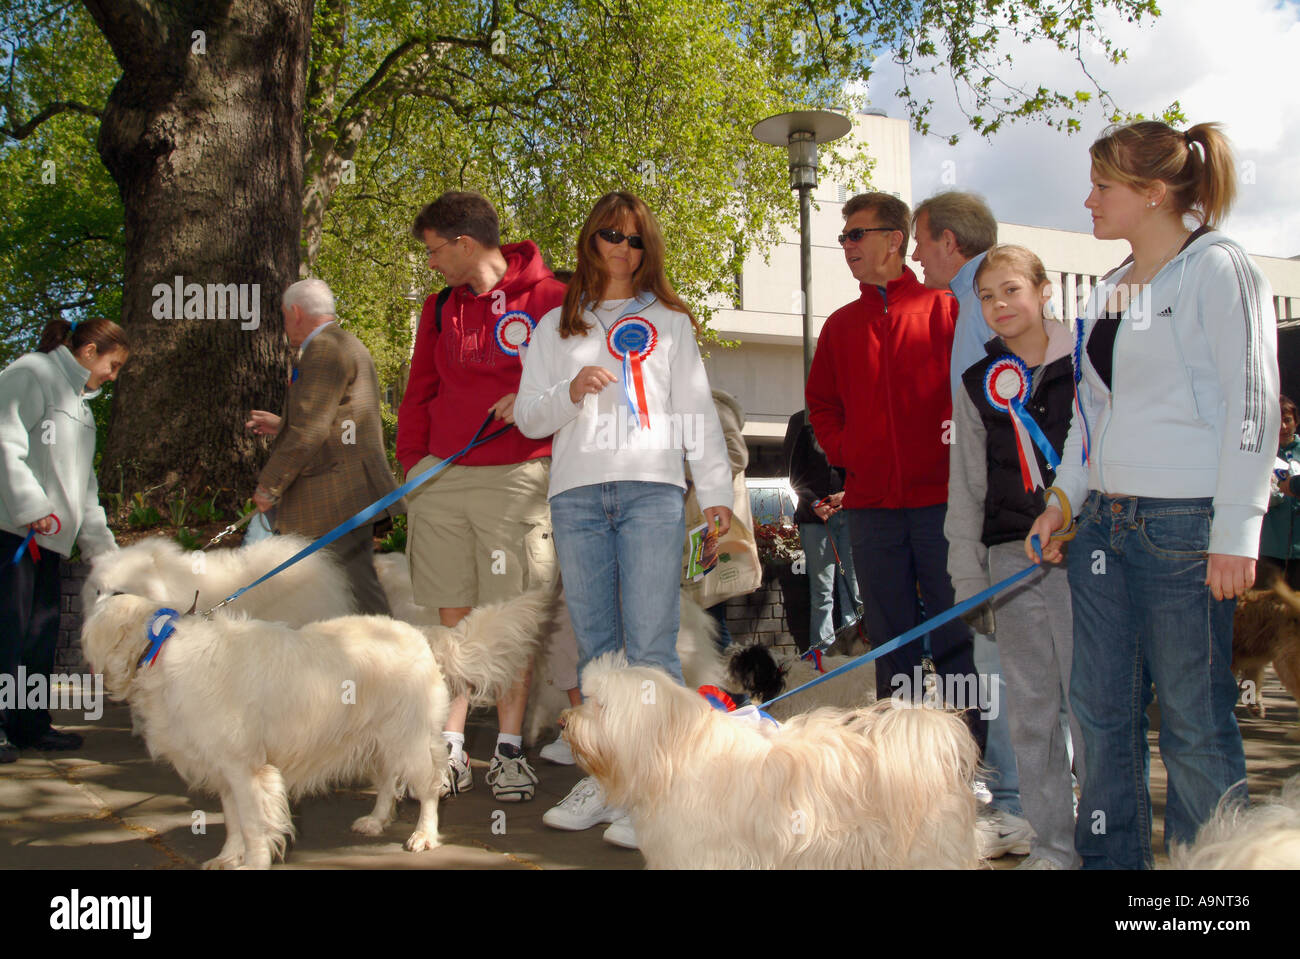 DOG OWNERS IN A CHARITY ORGANIZED WALK REGENTS PARK LONDON MAY 2005 - Stock Image